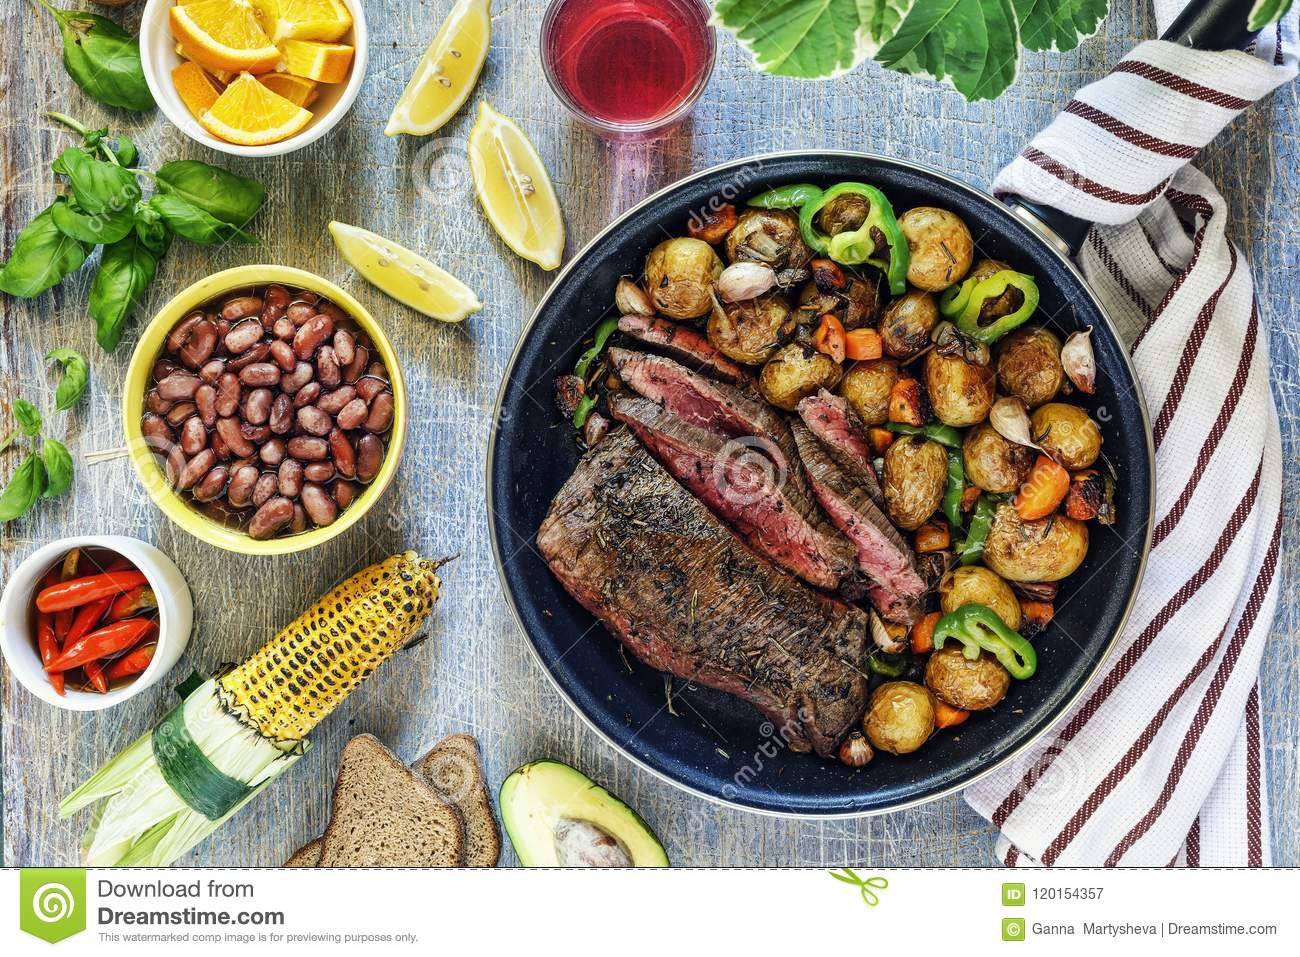 Dinner table, beef, vegetable, mix, grilled, steak, wine, barbecue, stone, background concept food, top view